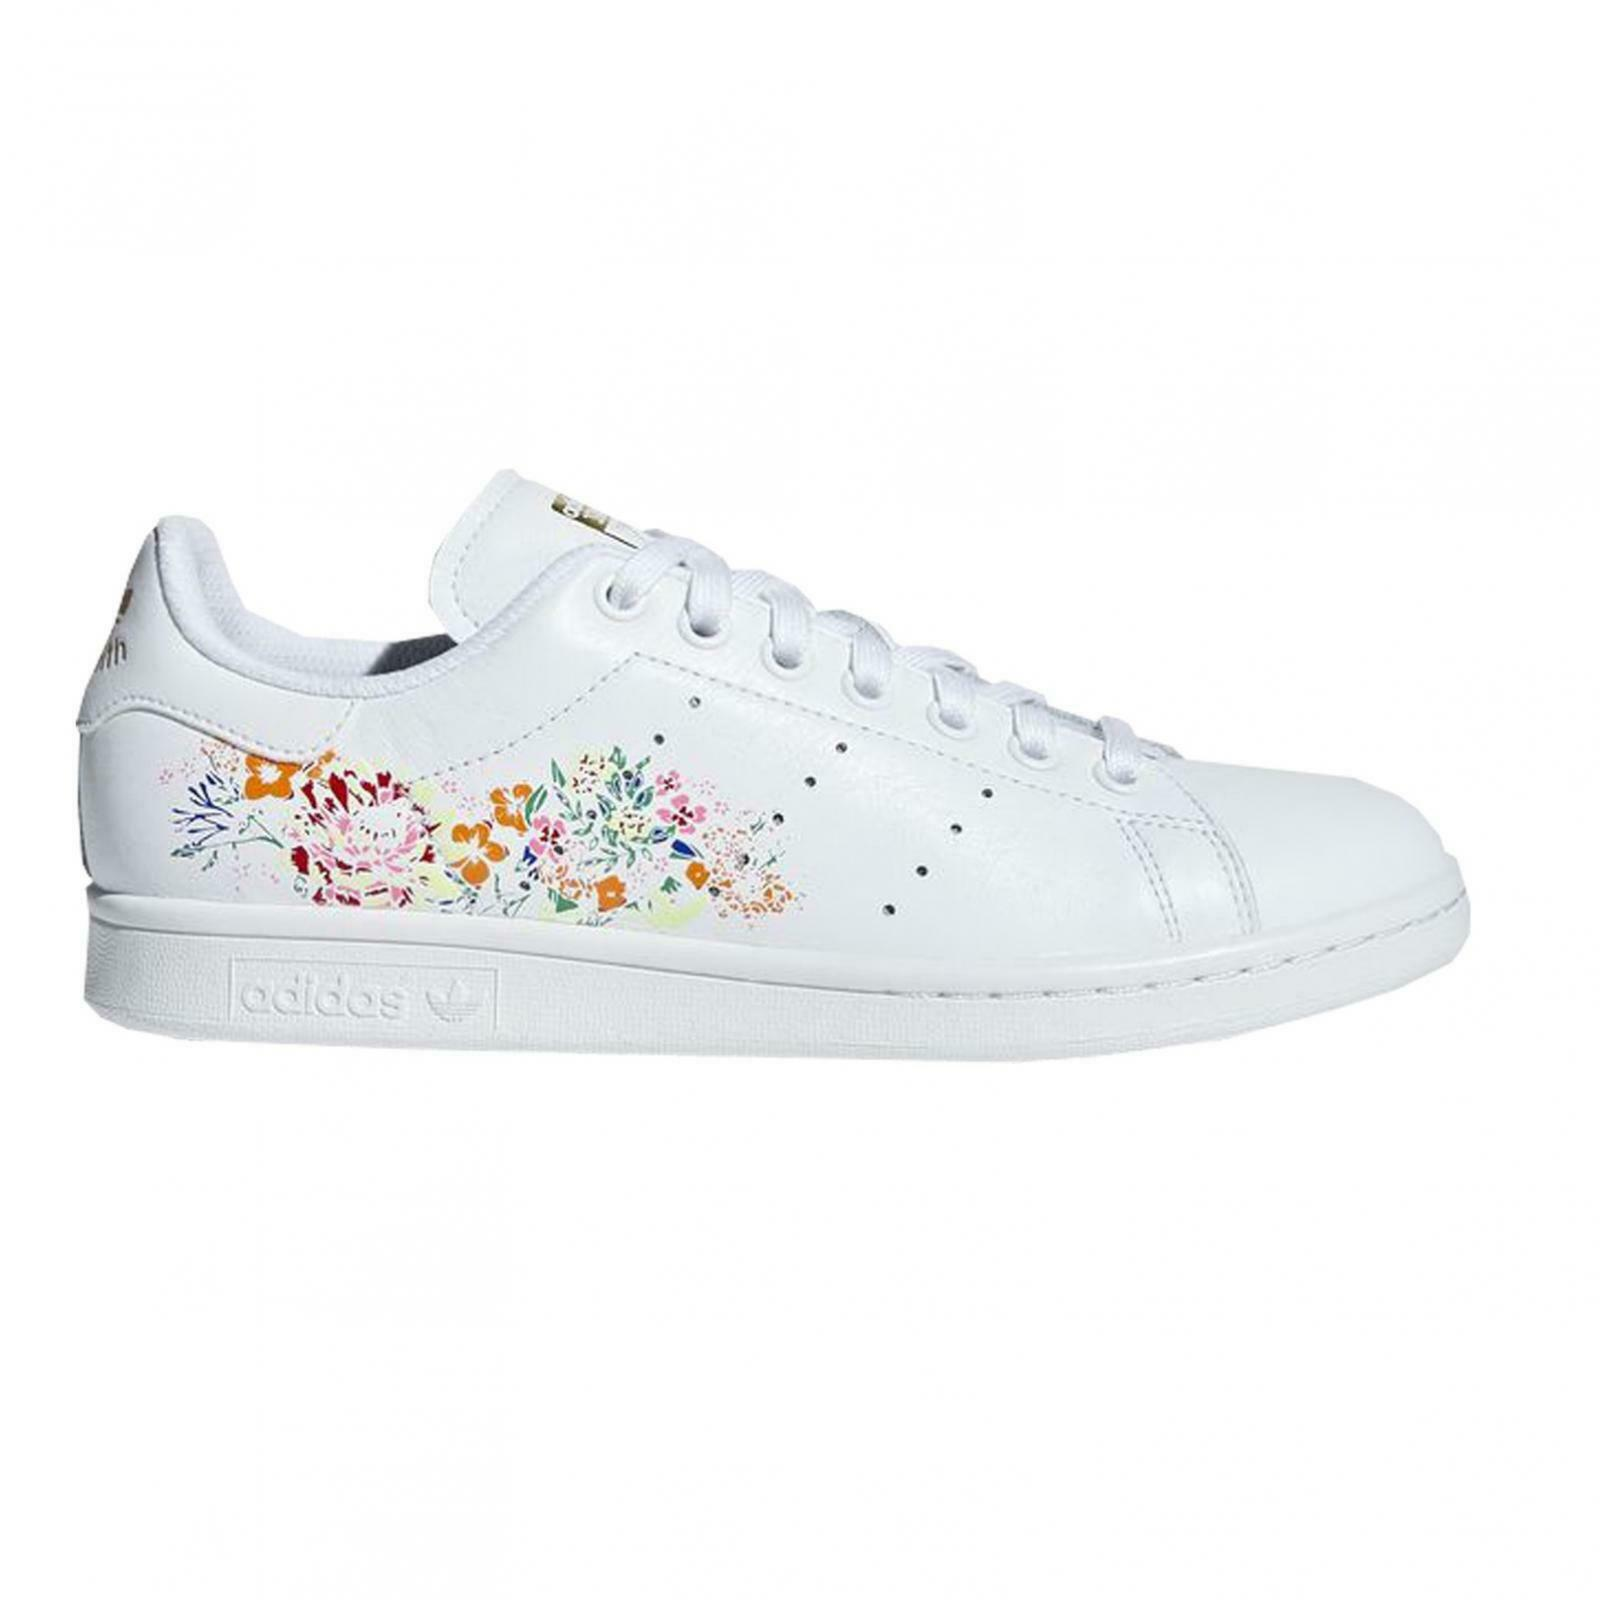 Womens ADIDAS STAN SMITH White Trainers BC0259